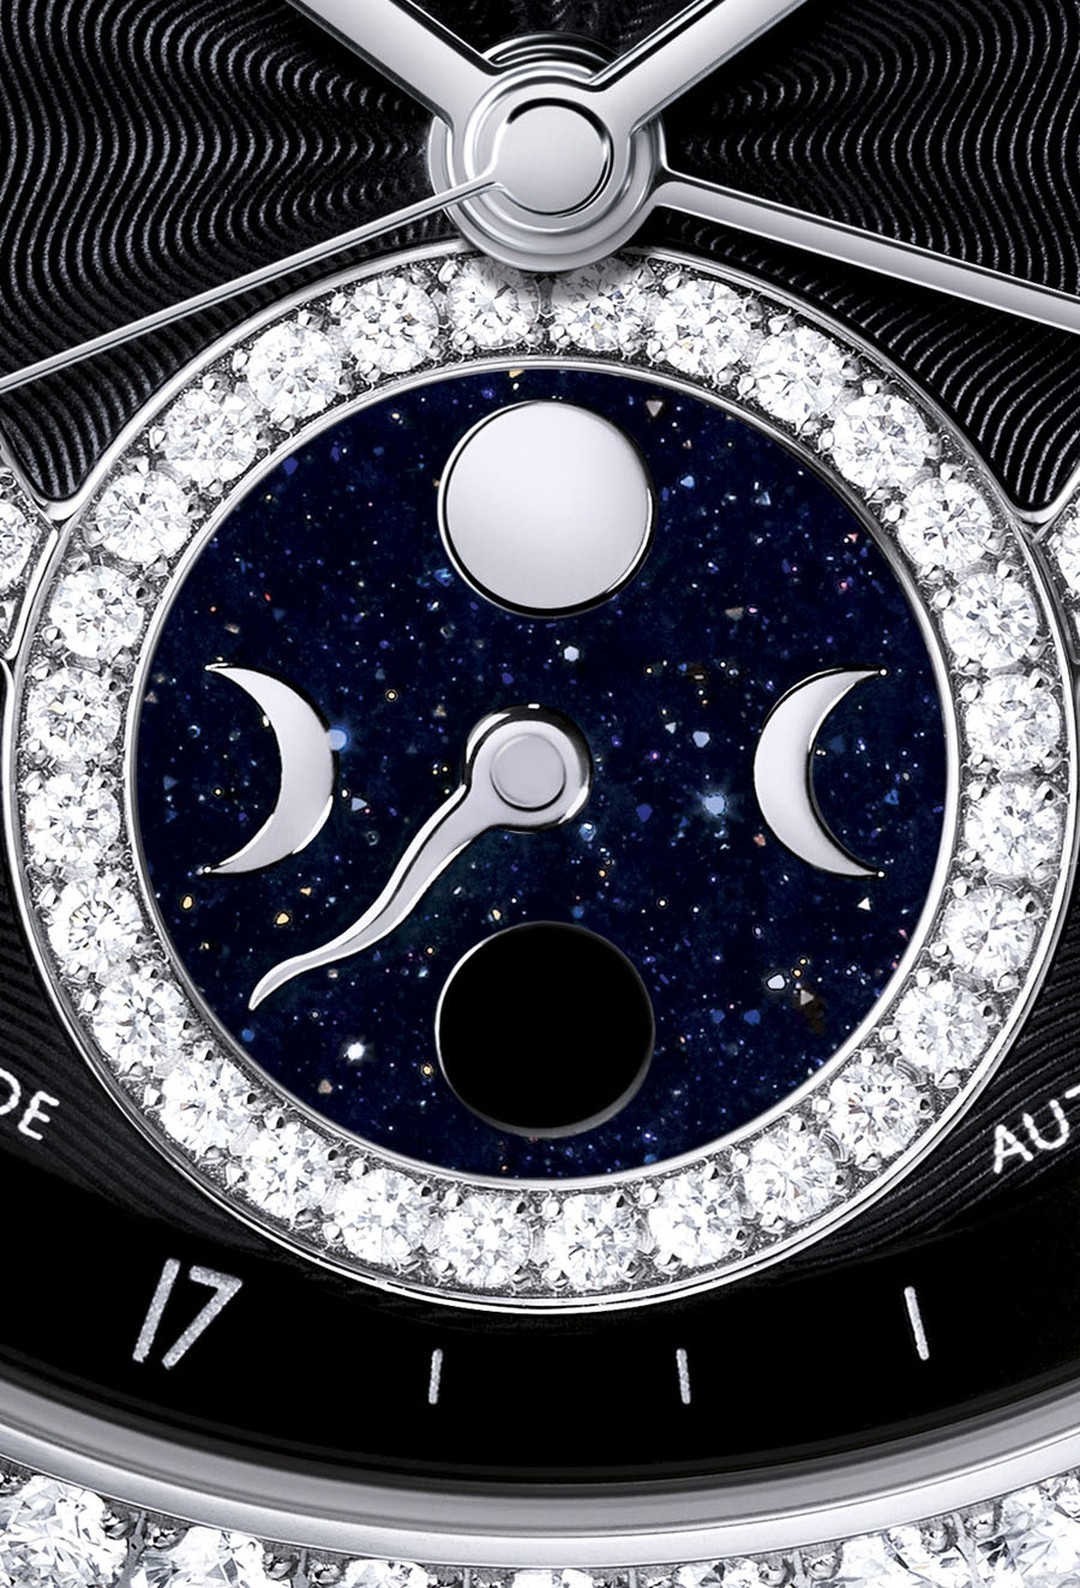 ChanelJ12MoonphaseWatch20.jpg